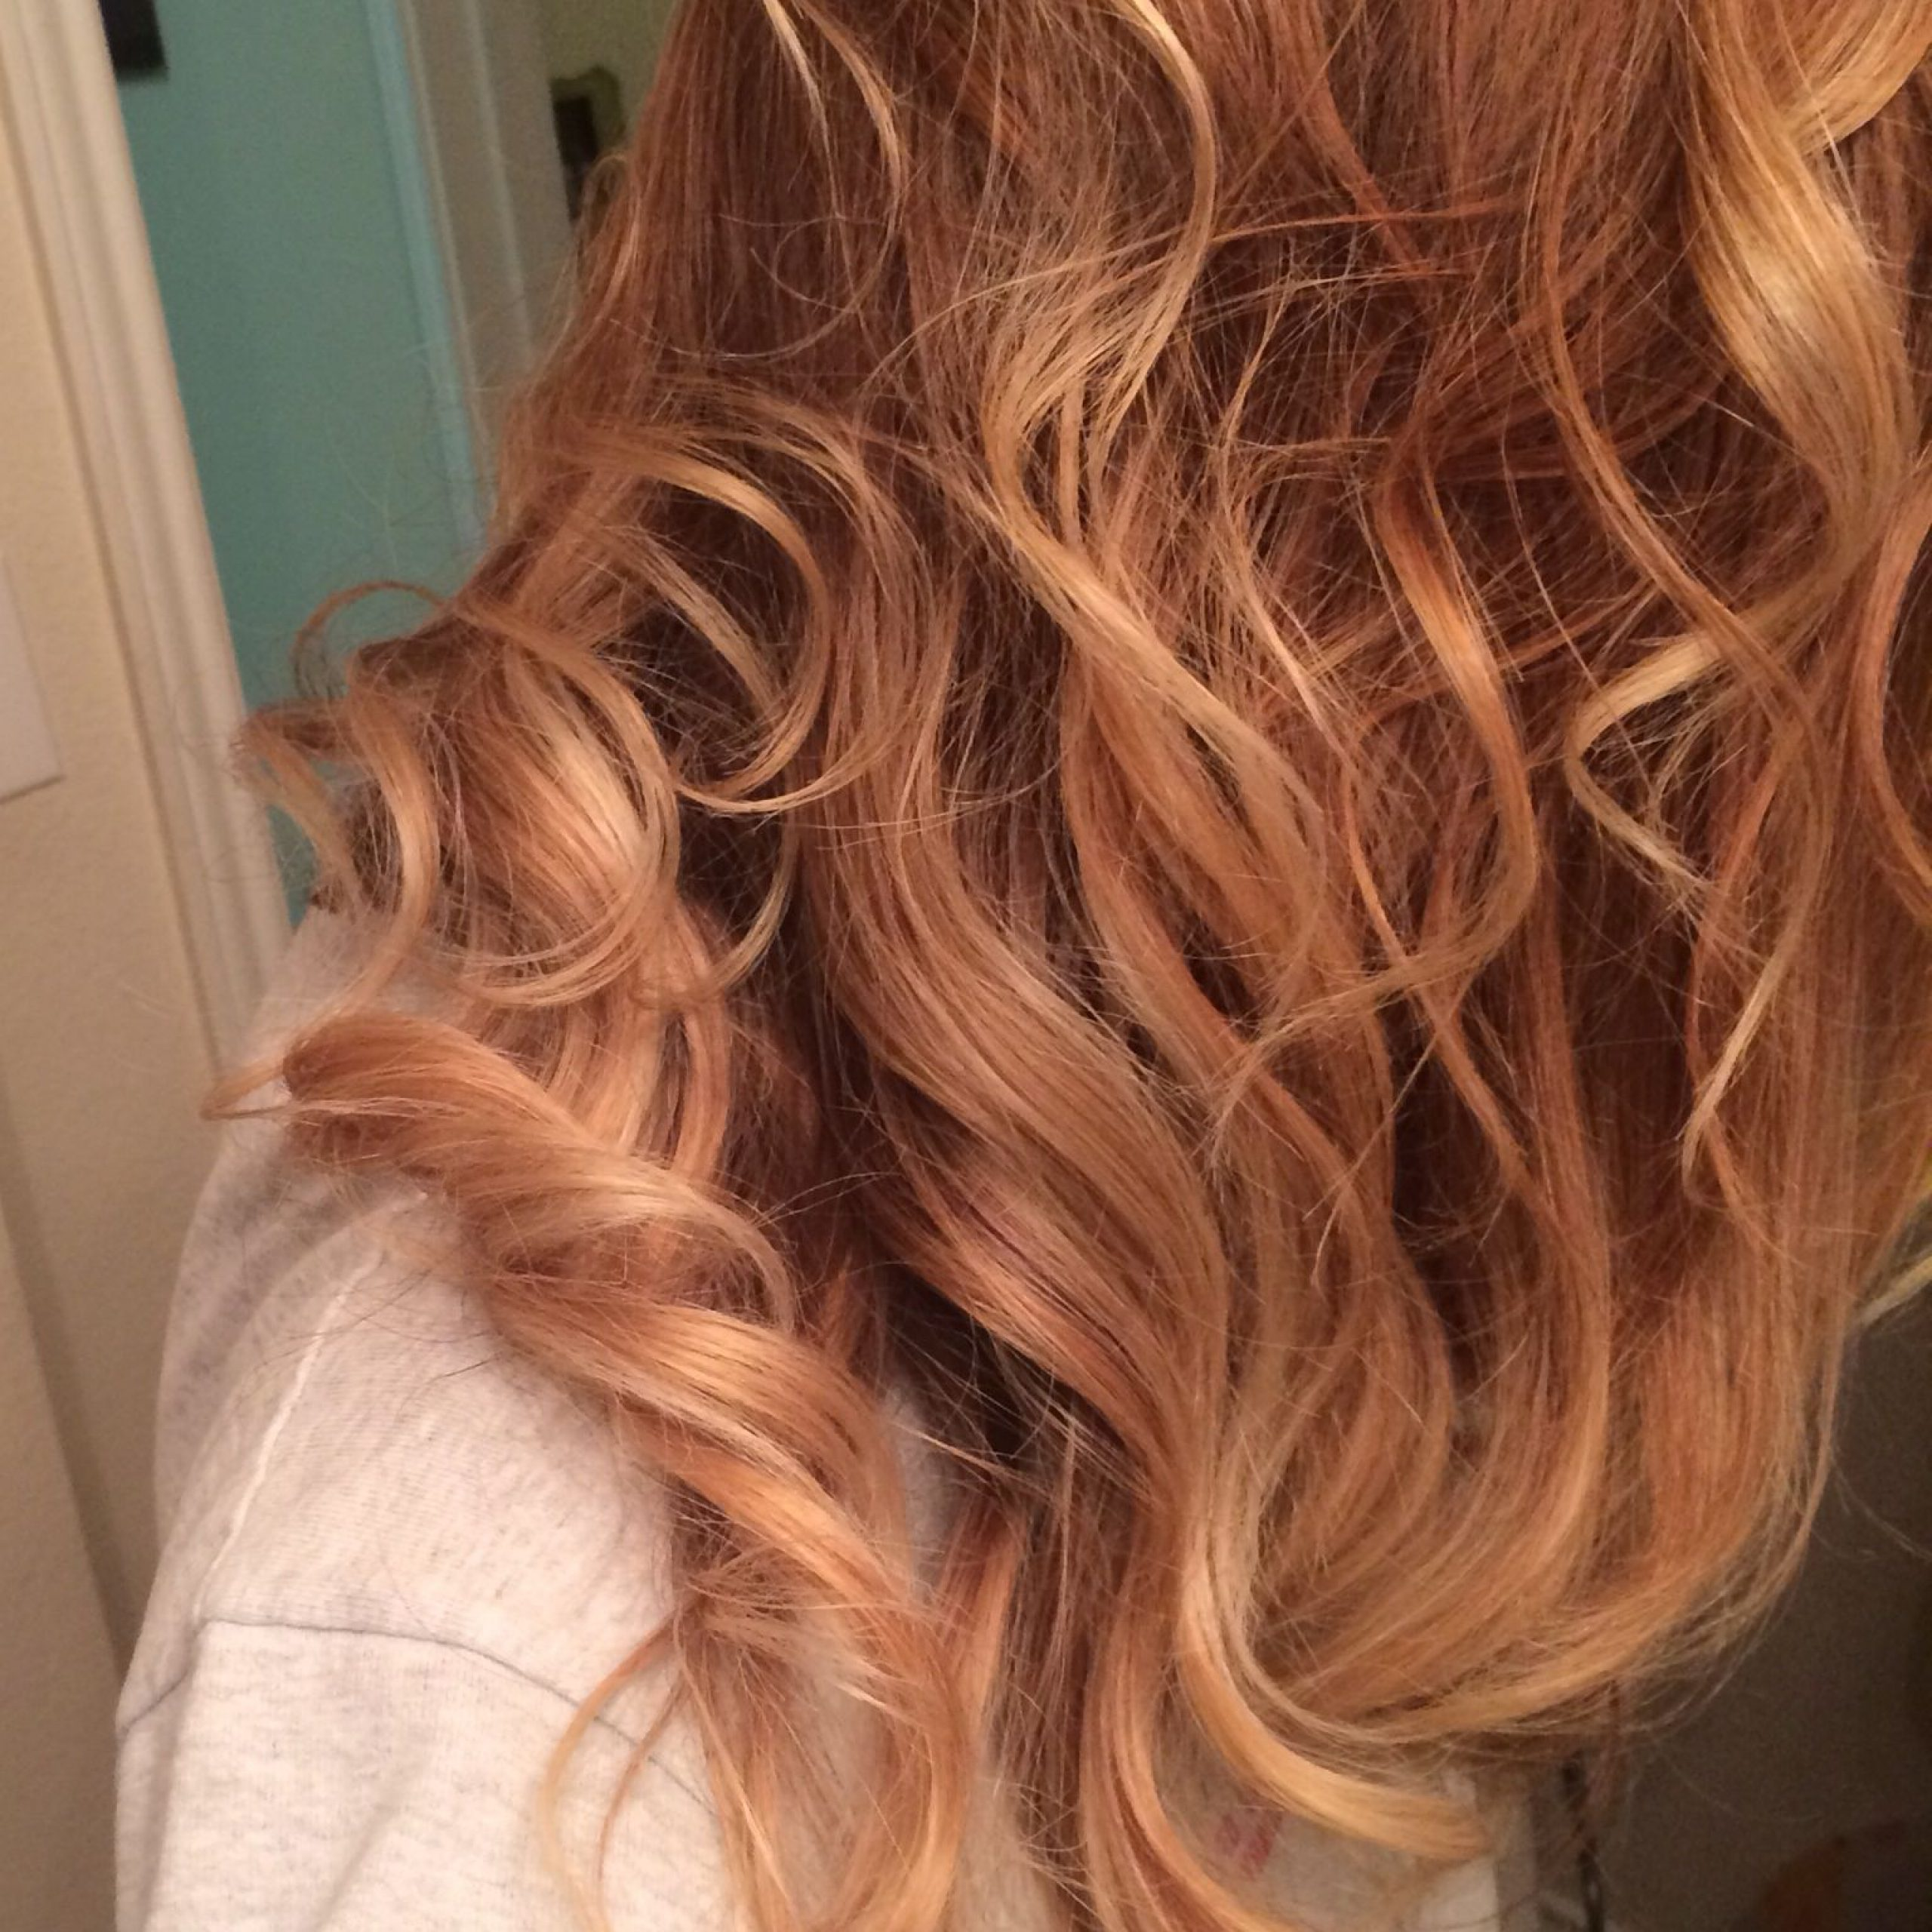 Pinemily Nelms On Lehair | Strawberry Hair, Hair Intended For Marsala To Strawberry Blonde Ombre Hairstyles (Gallery 17 of 20)